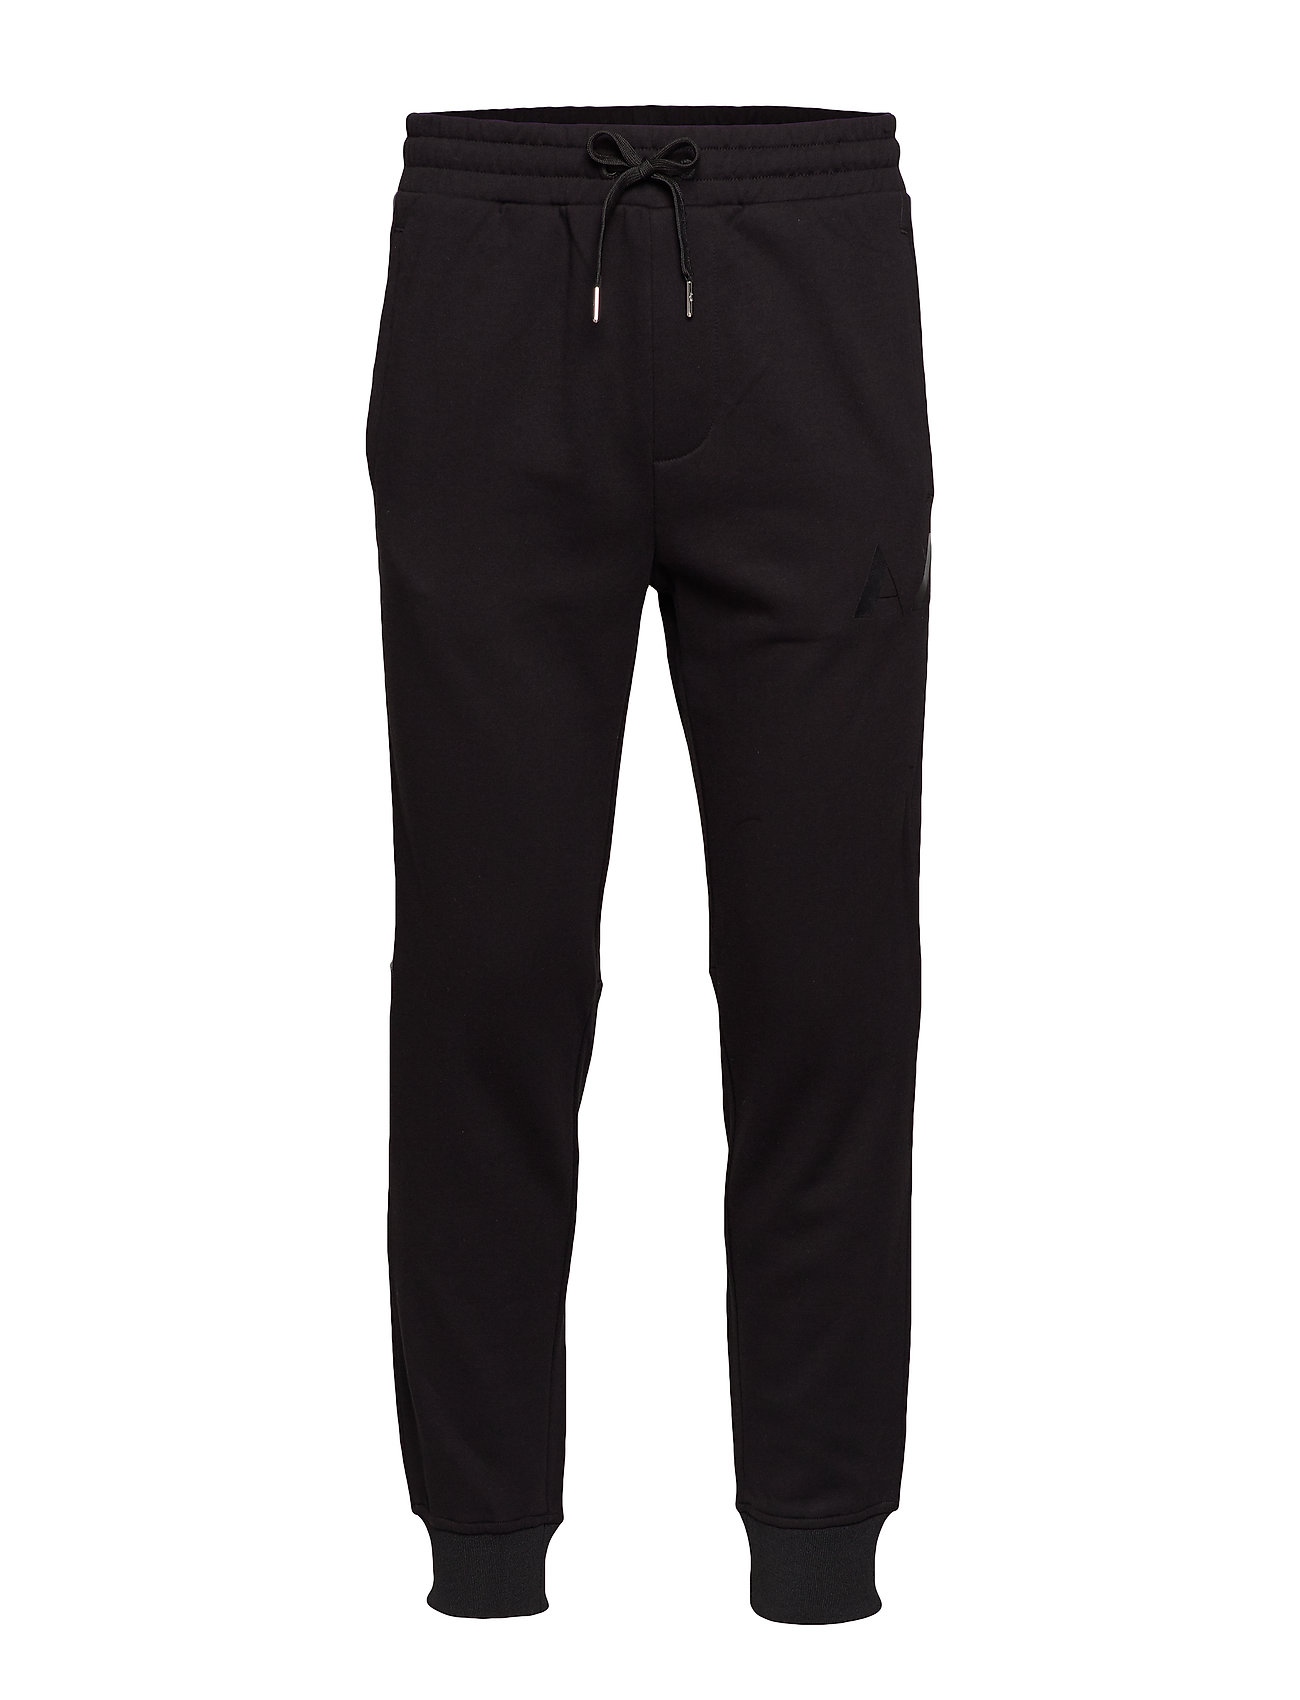 Armani Exchange AX MAN TROUSERS - BLACK